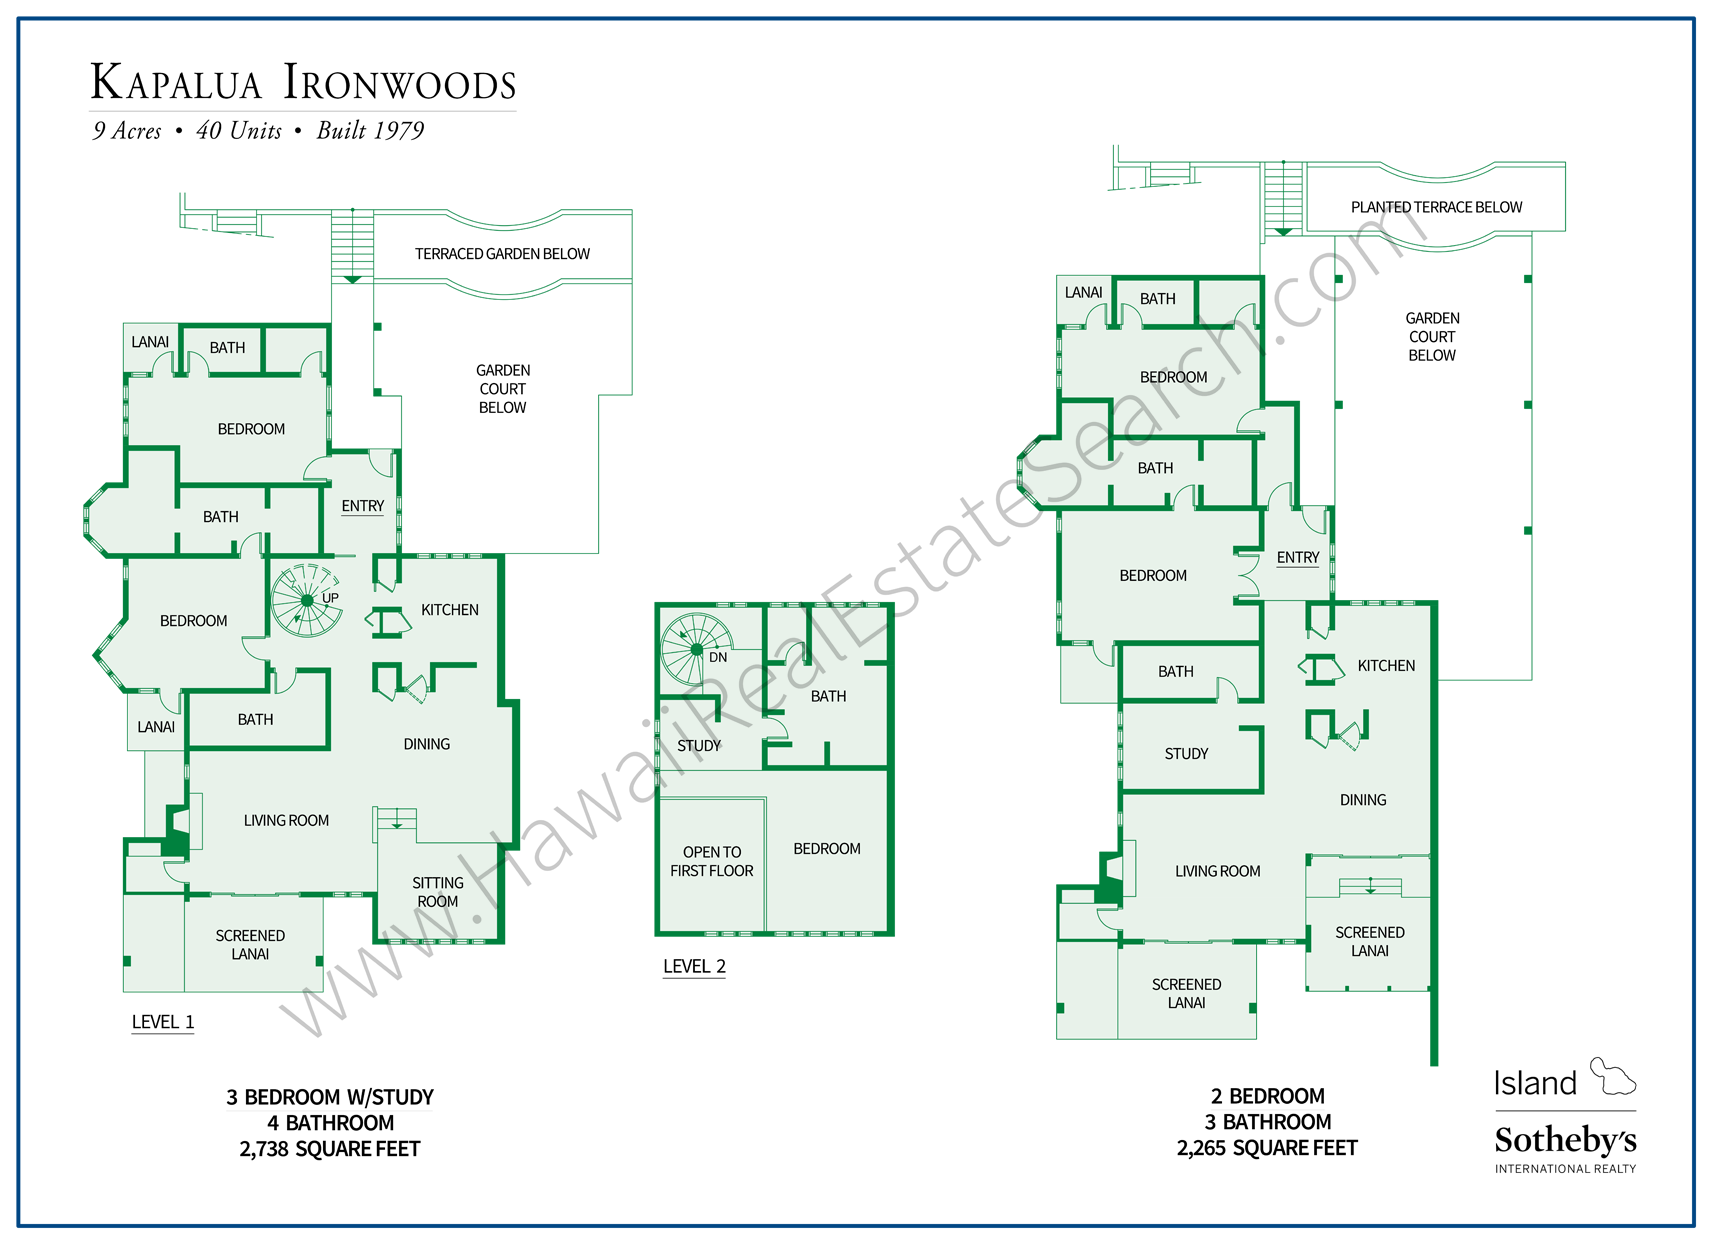 kapalua ironwoods floor plan 3 bedroom